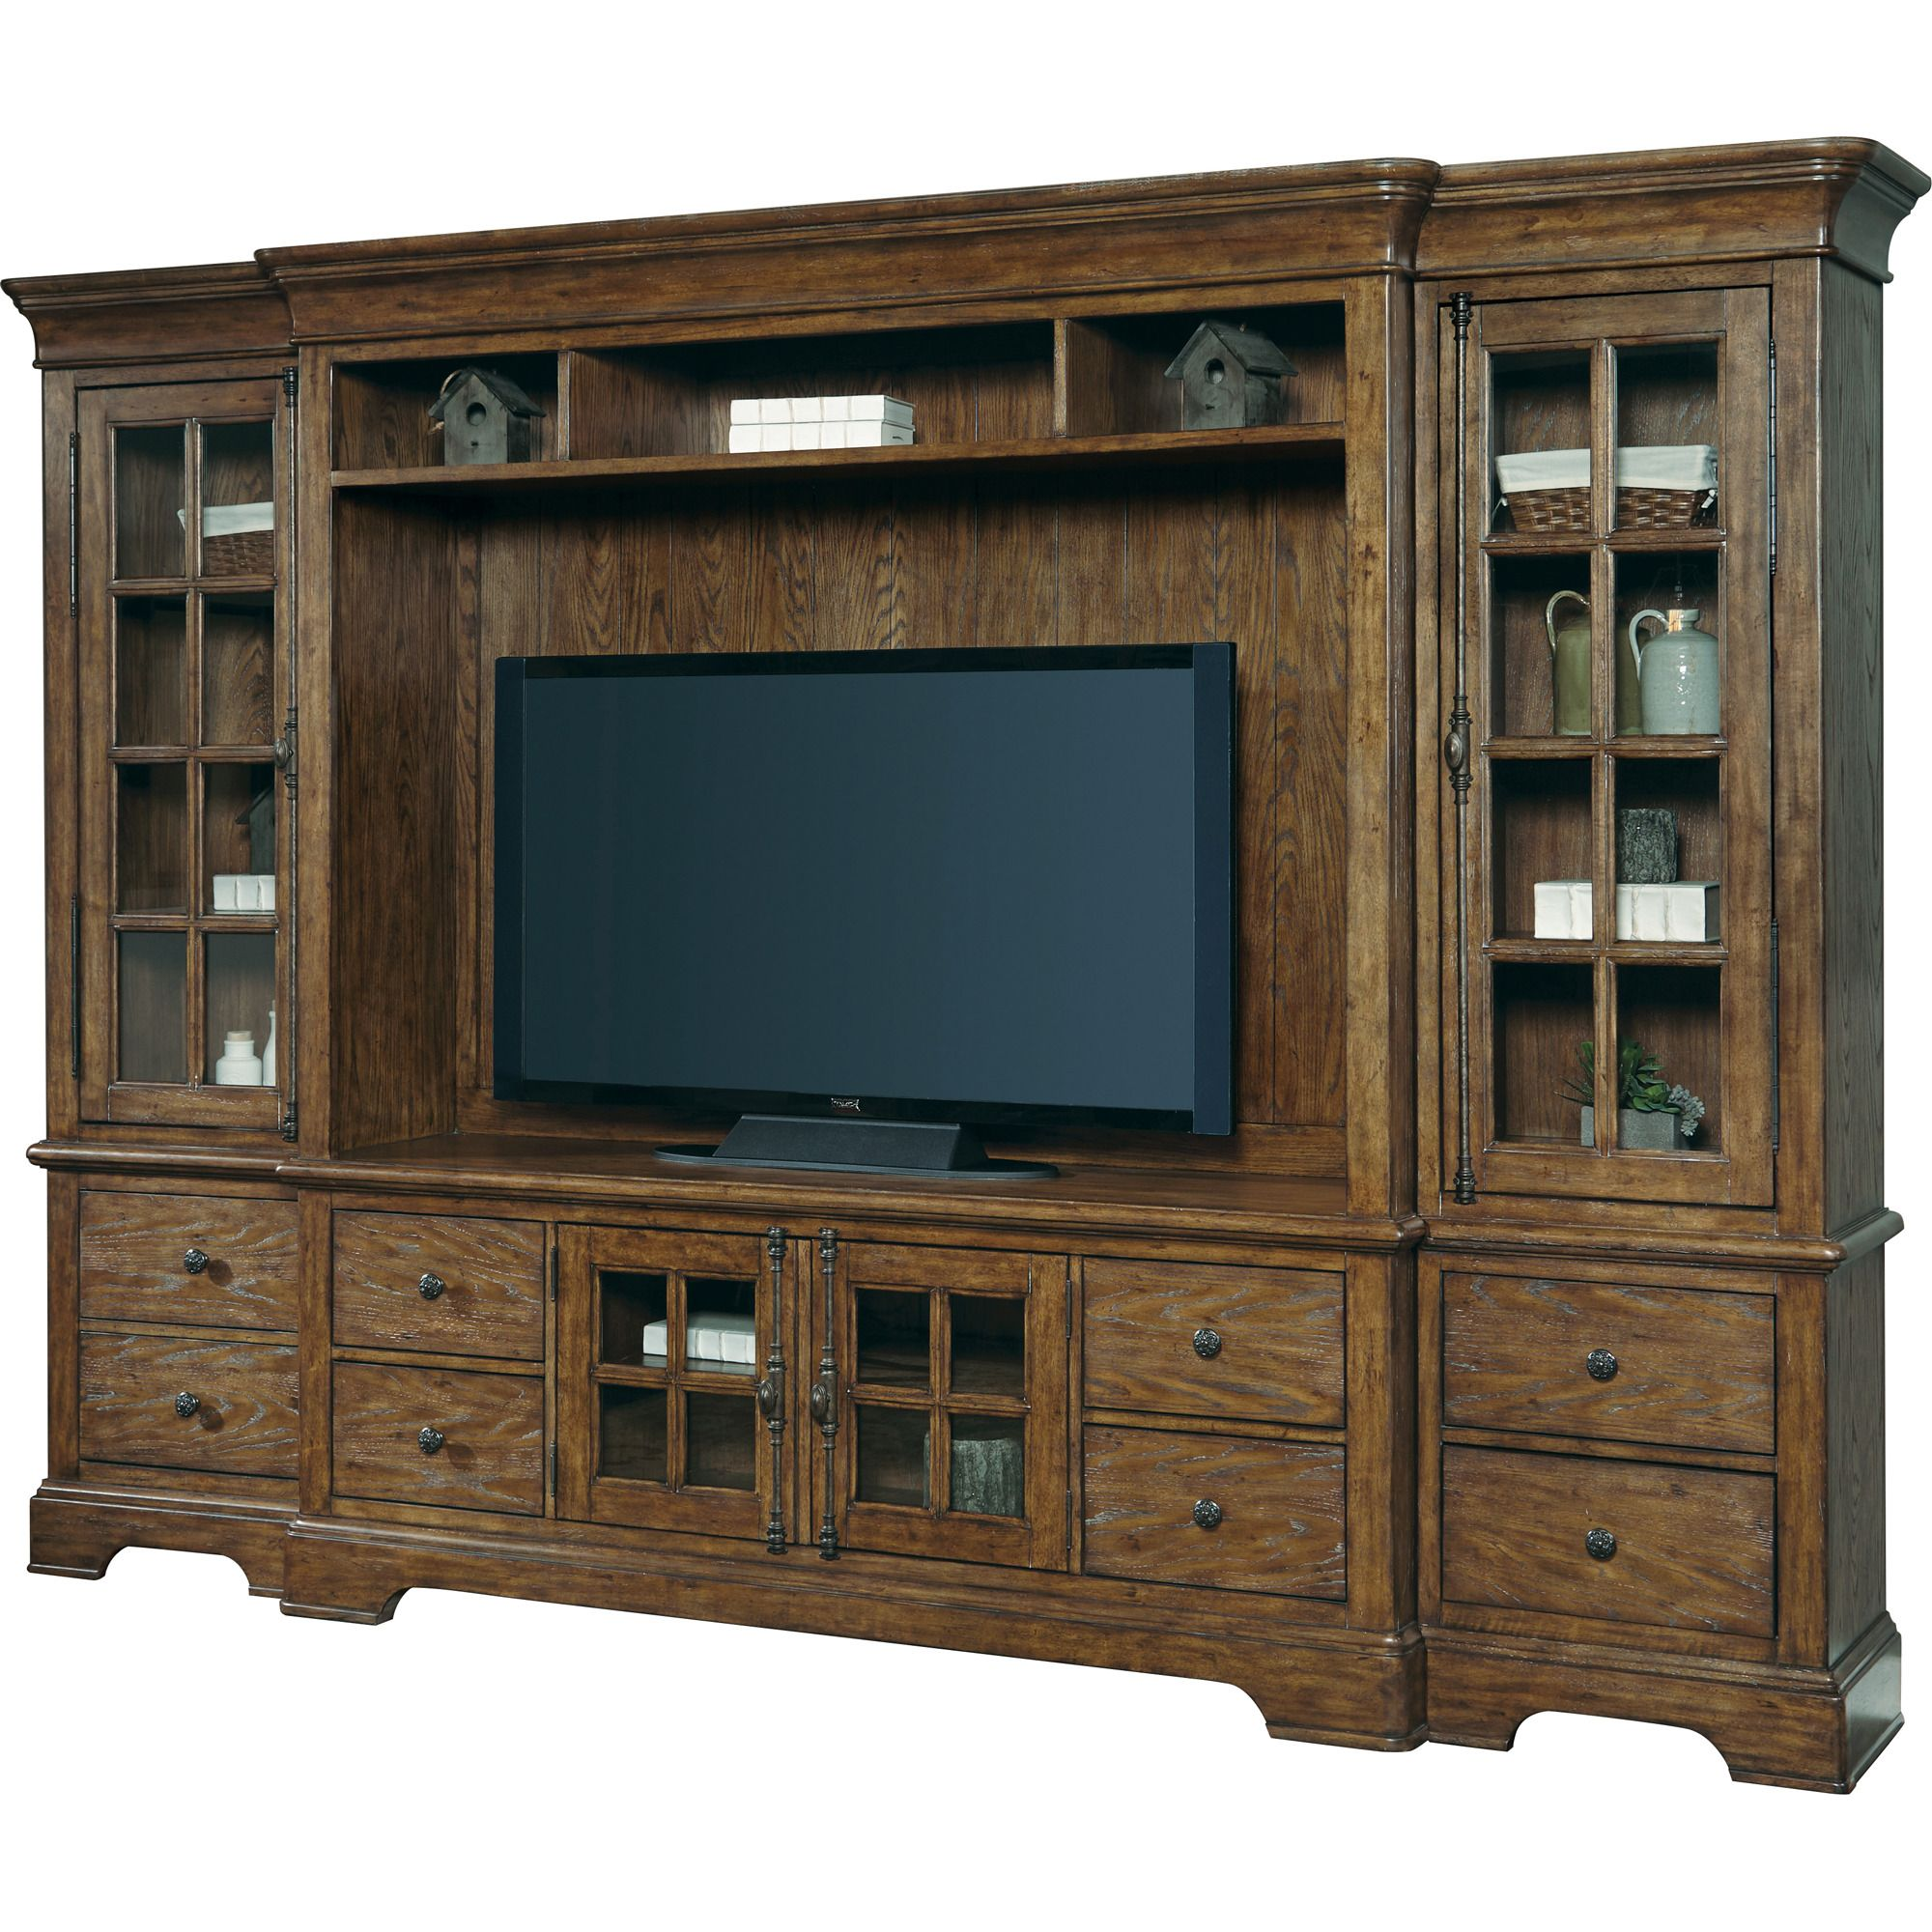 American Attitude Entertainment Center In Oak